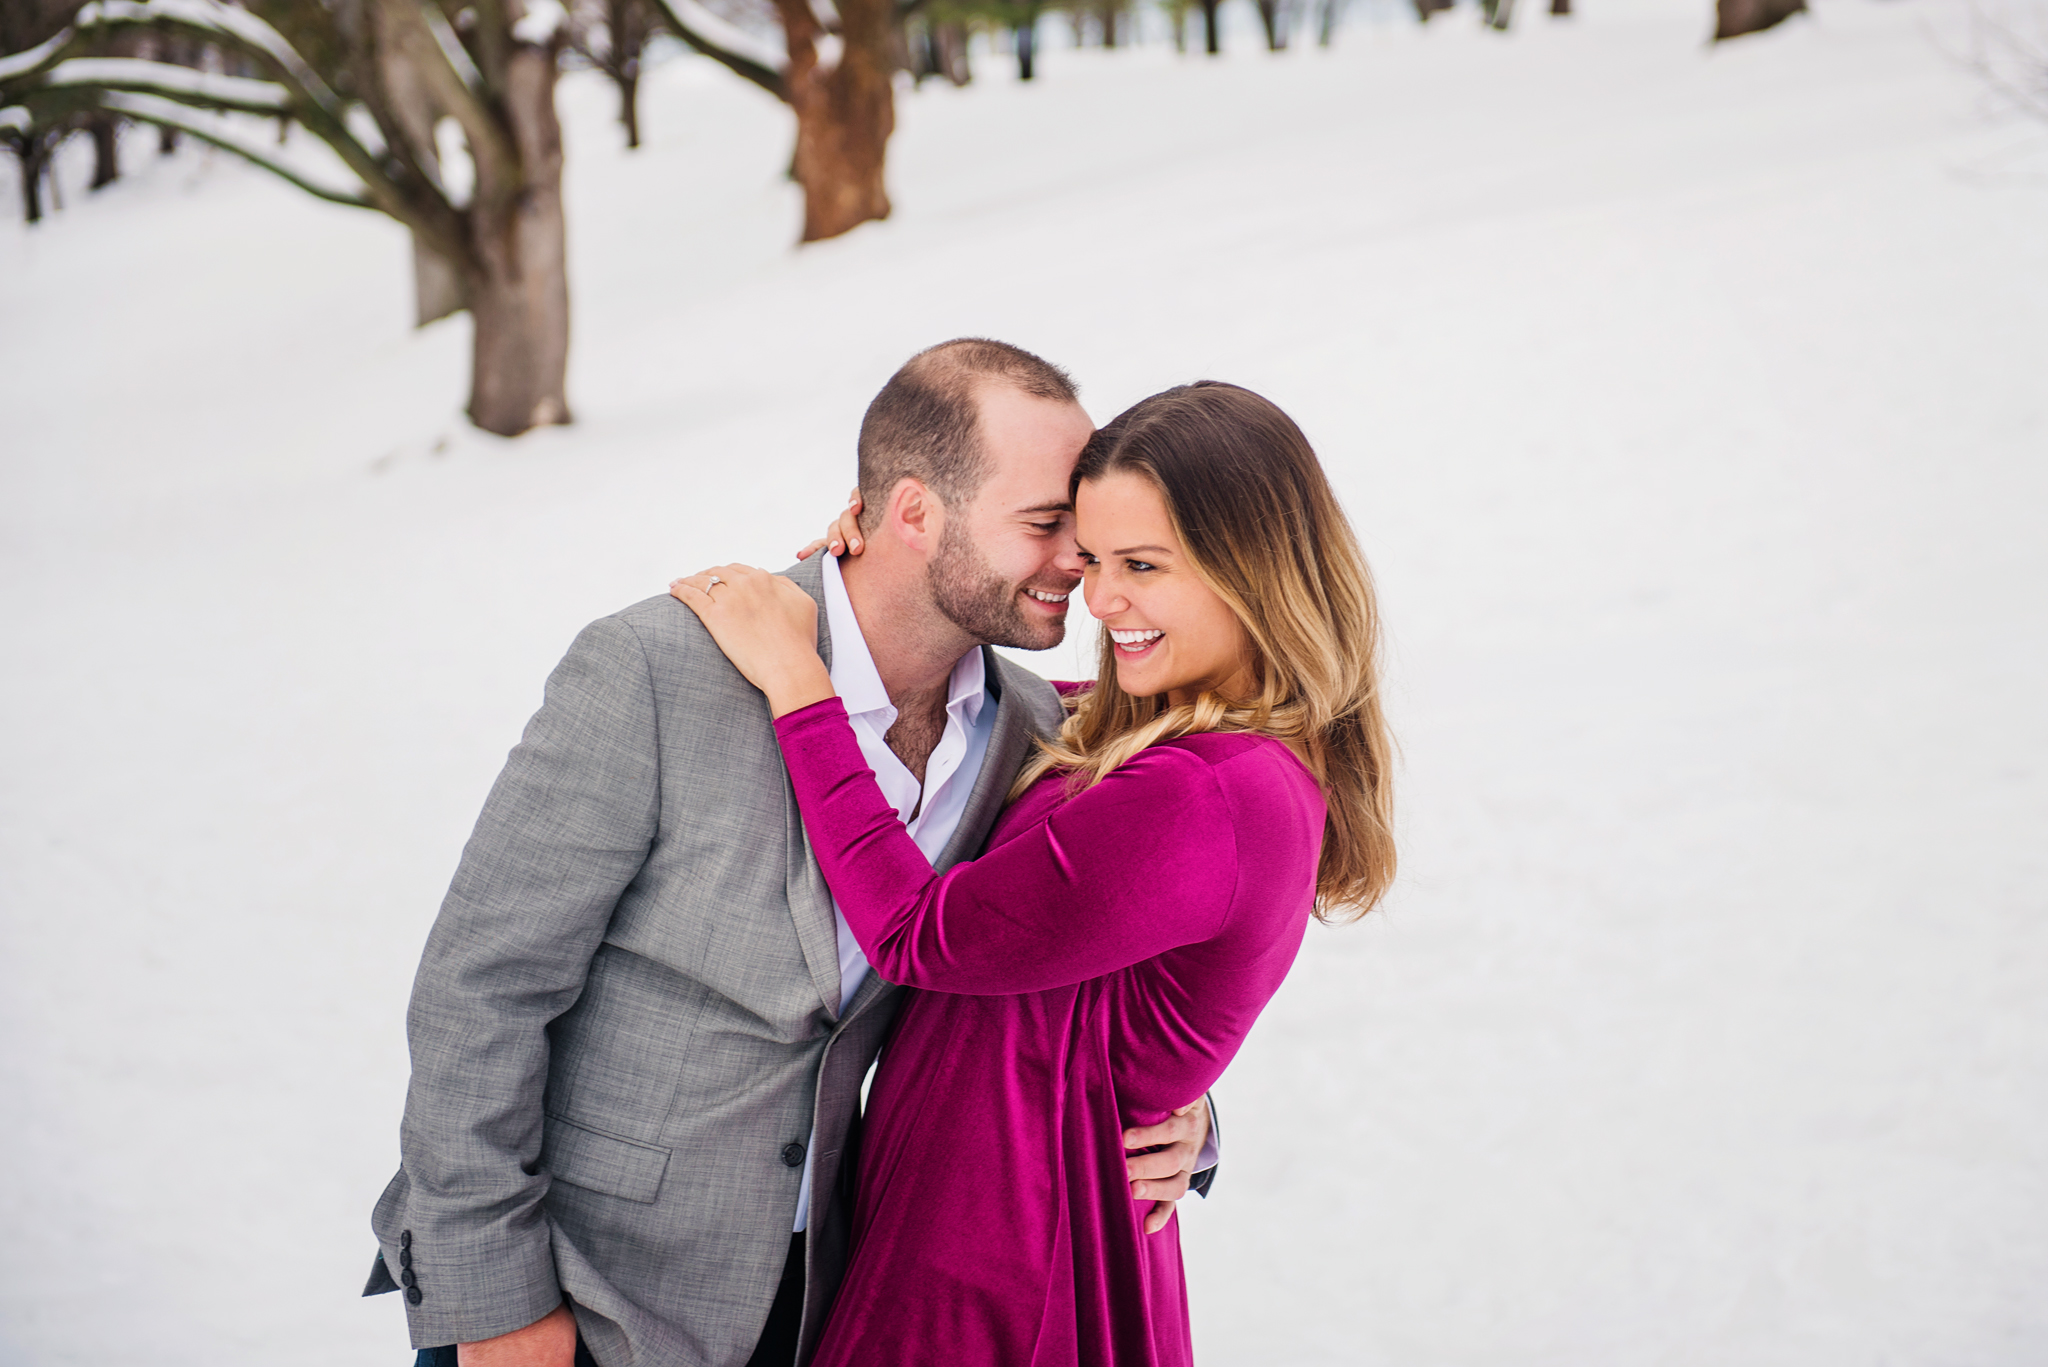 Webster_Park_Engagement_Session_Rochester_NY_photographer_DSC_6410.jpg